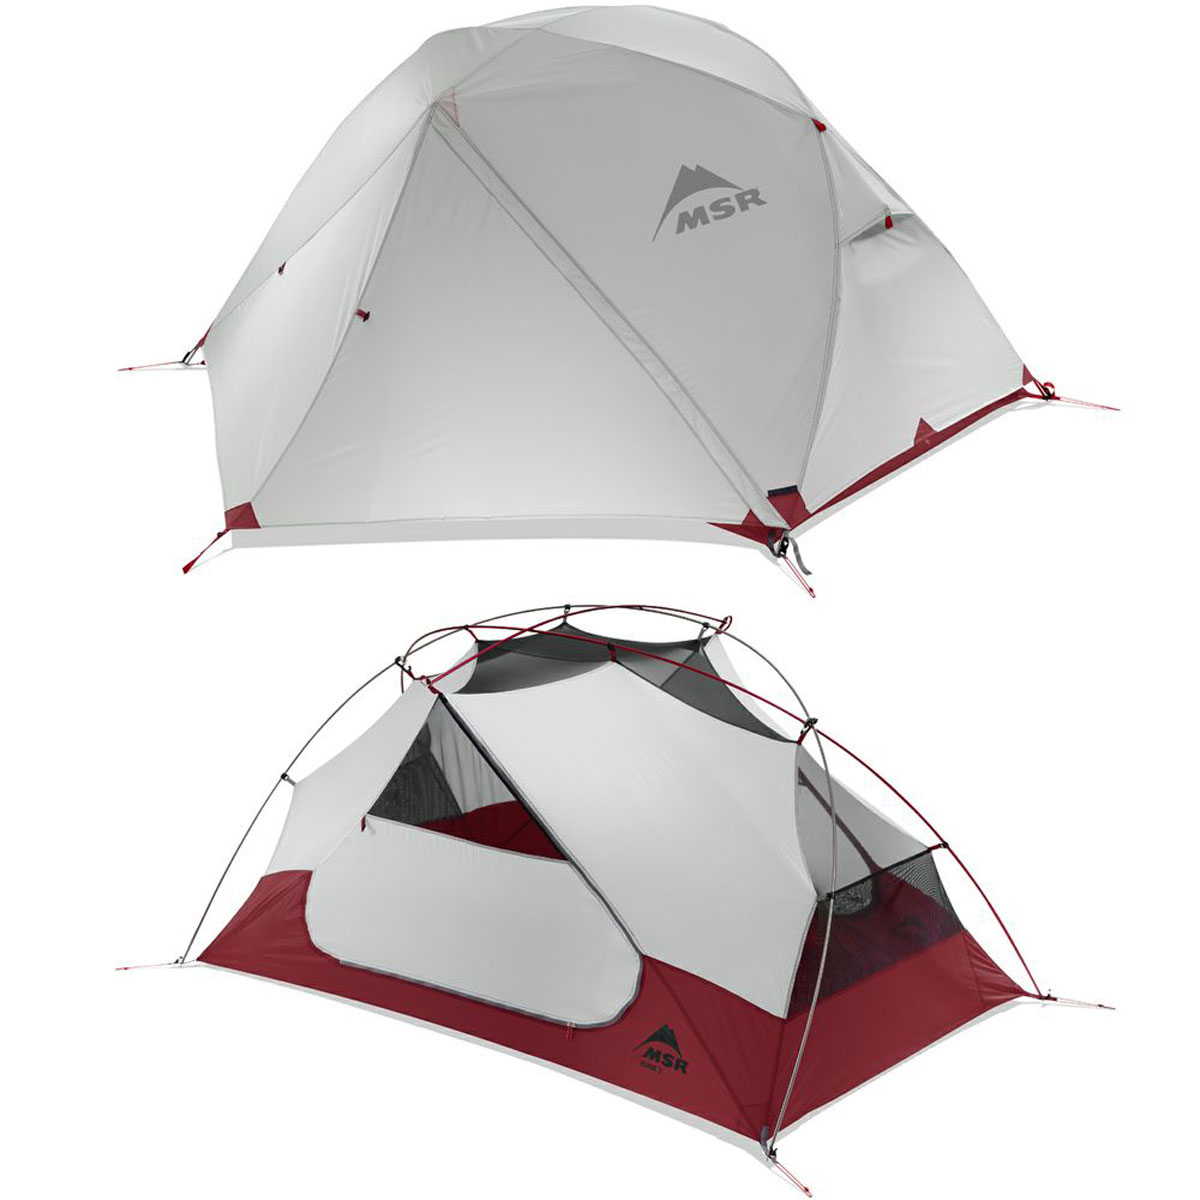 Elixir 2 tent from MSR